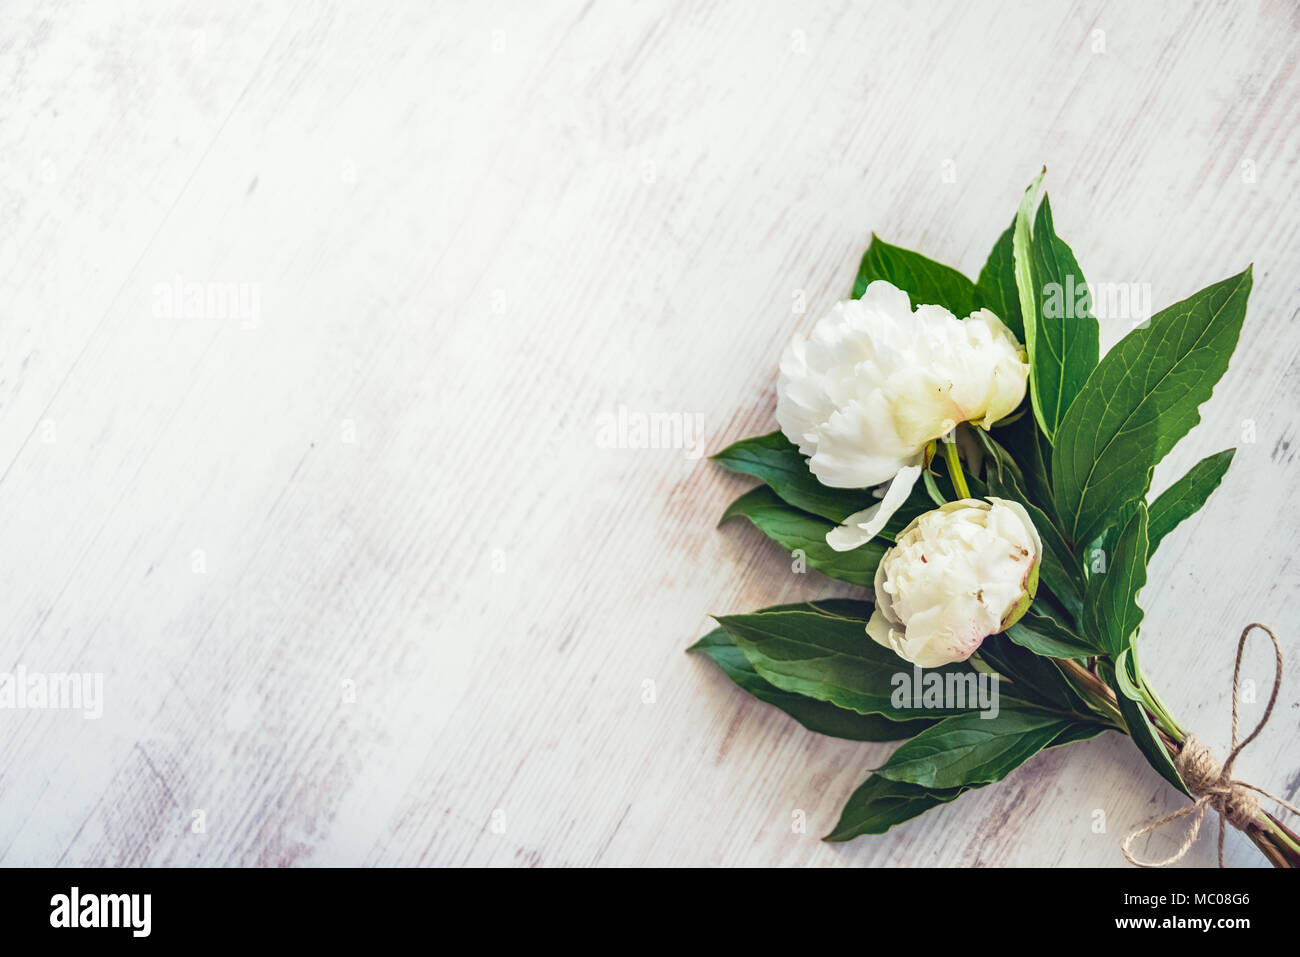 Top View Of A Bouquet Of White Peonies Flowers Over White Wooden